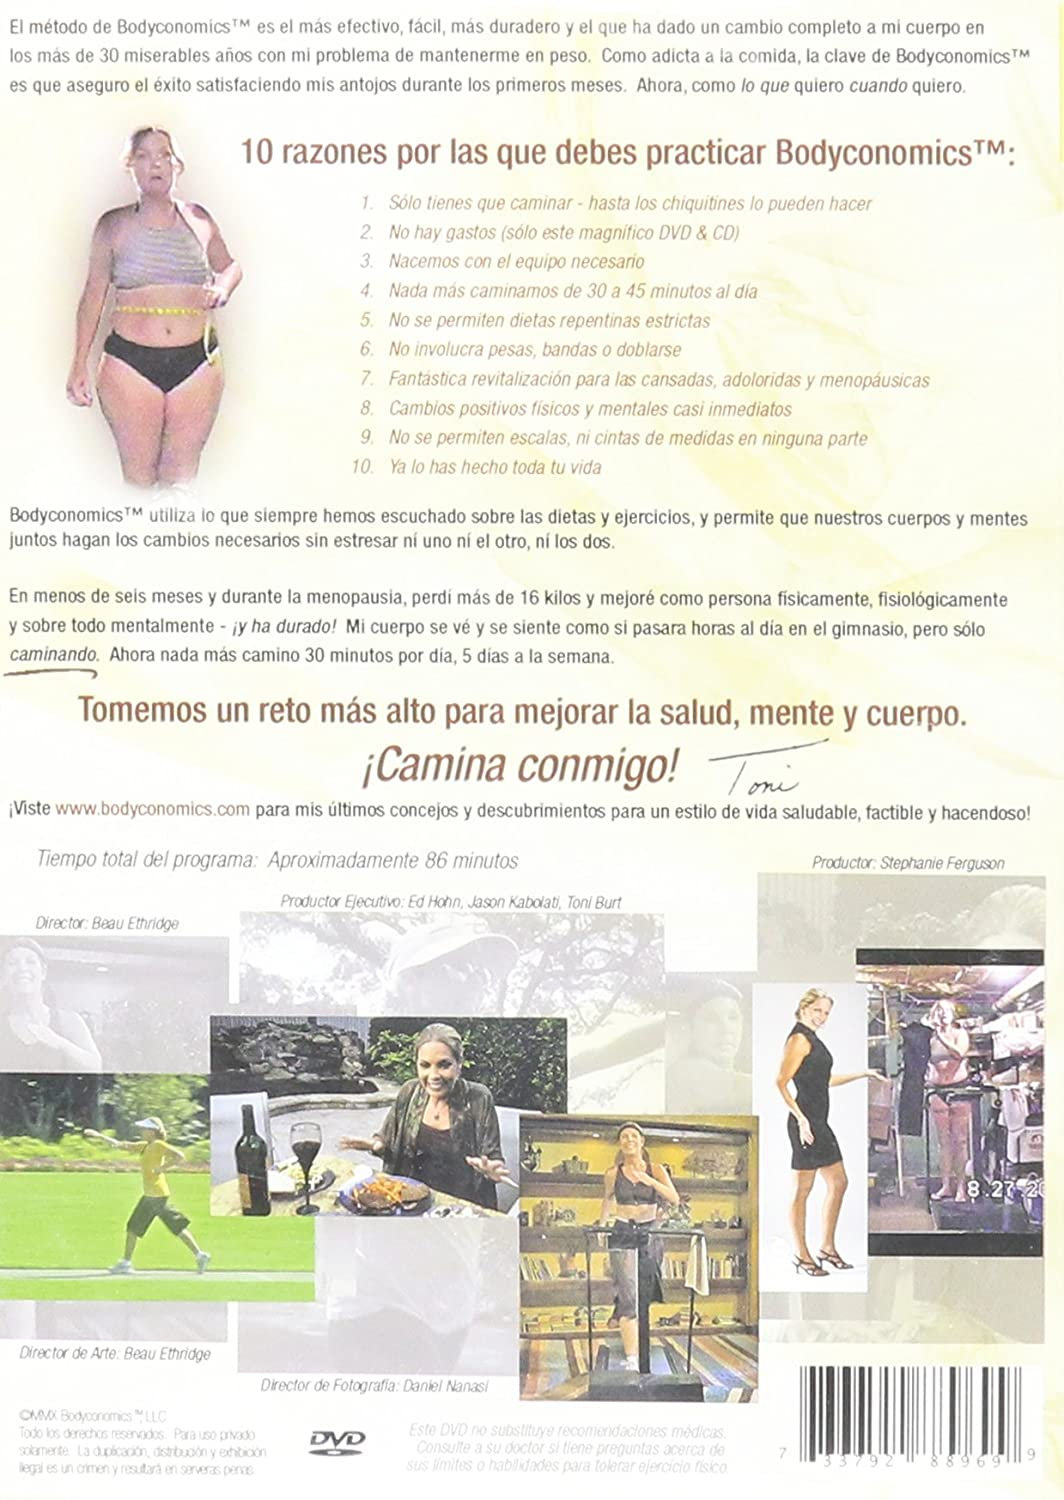 Amazon.com: Bodyconomics 101: Caminando y Mejorando: Toni Burt, Beau Ethridge, Stephanie Ferguson: Movies & TV